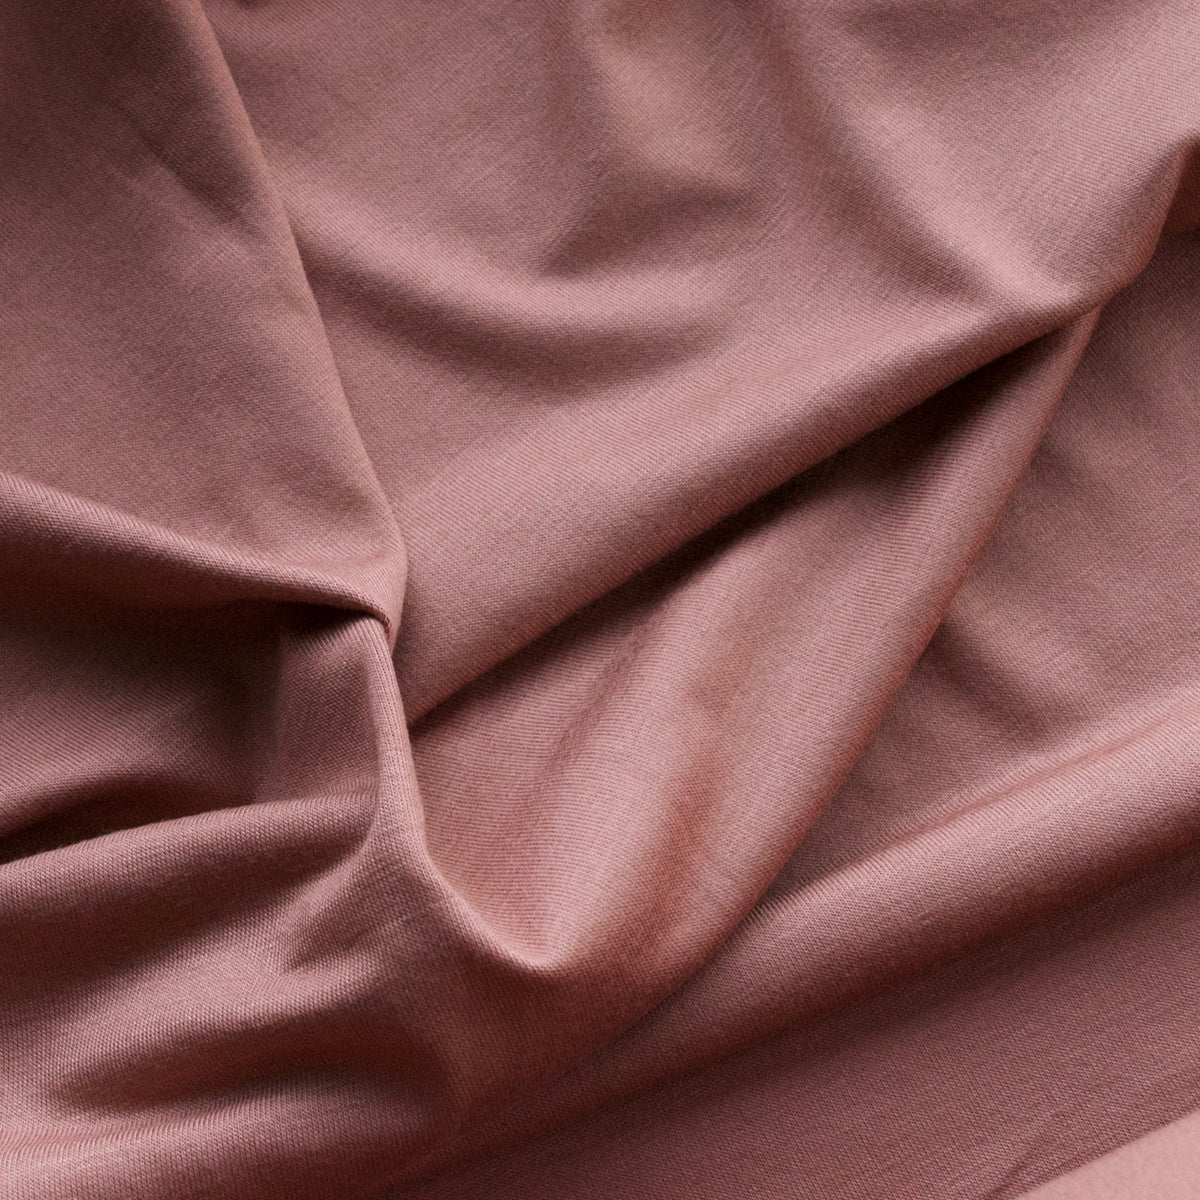 Bamboo Jersey - Copper Brown - MaaiDesign